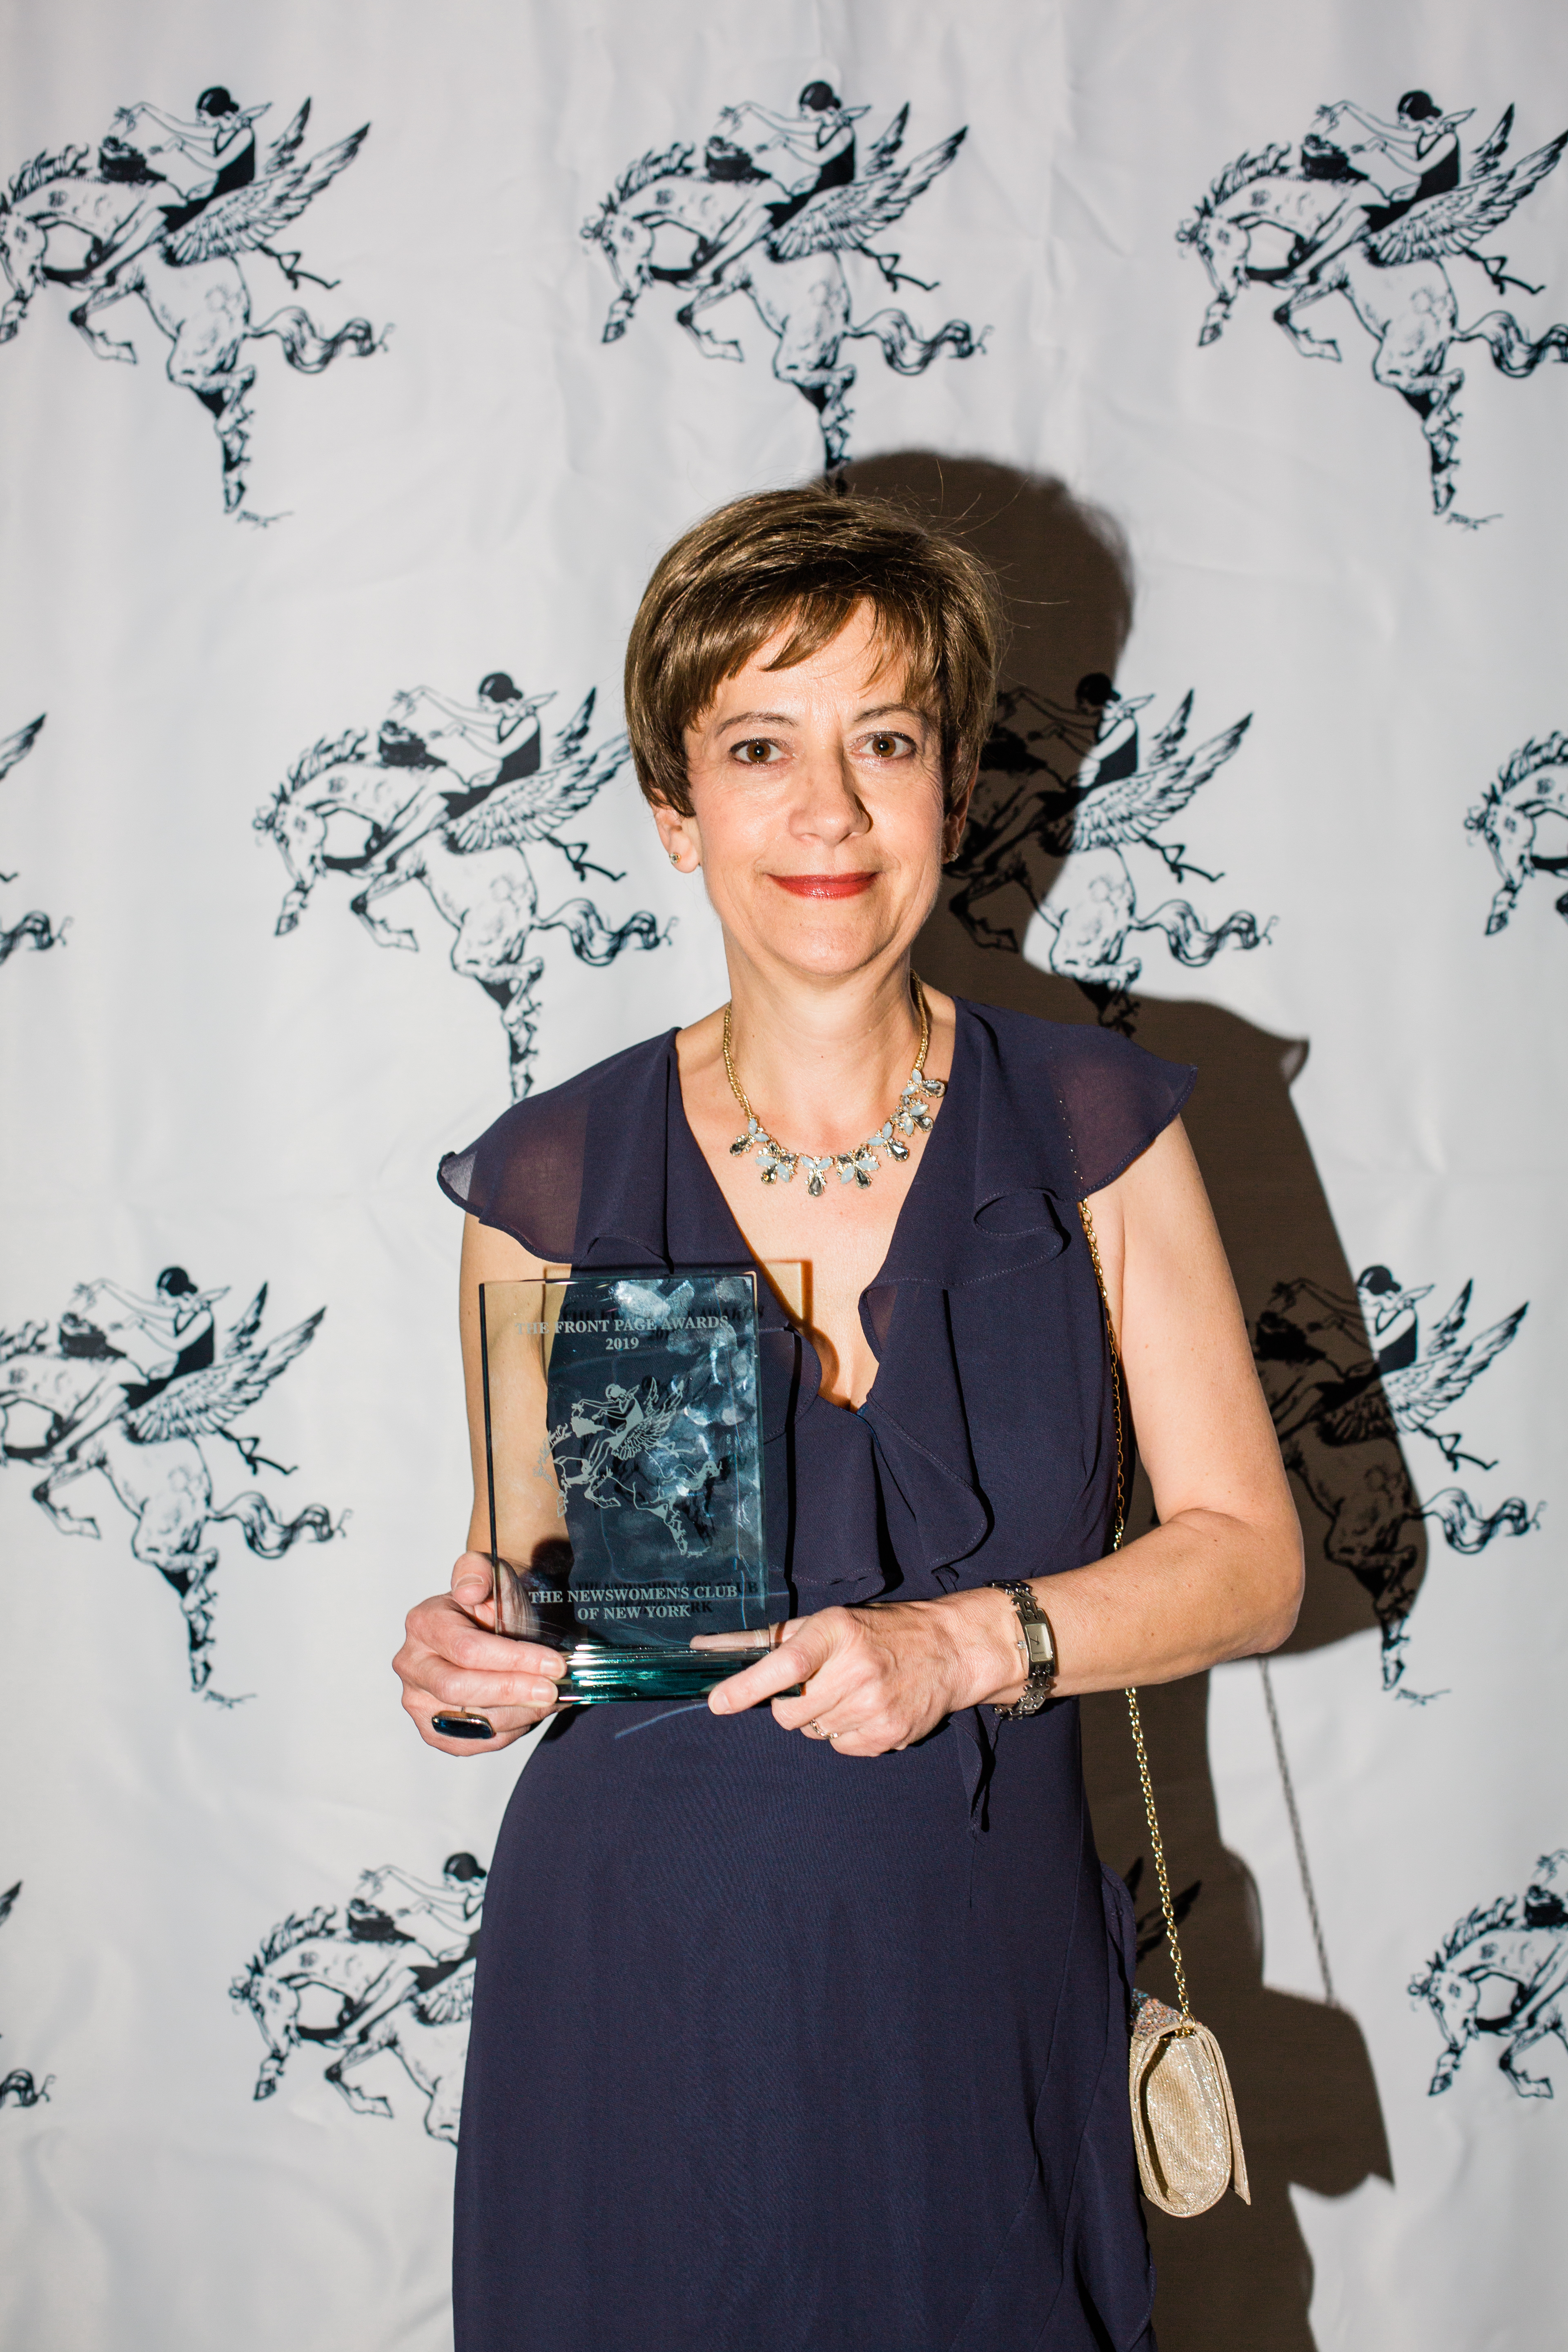 Xana Antunes with lifetime award from the Newswomen's Club of New York